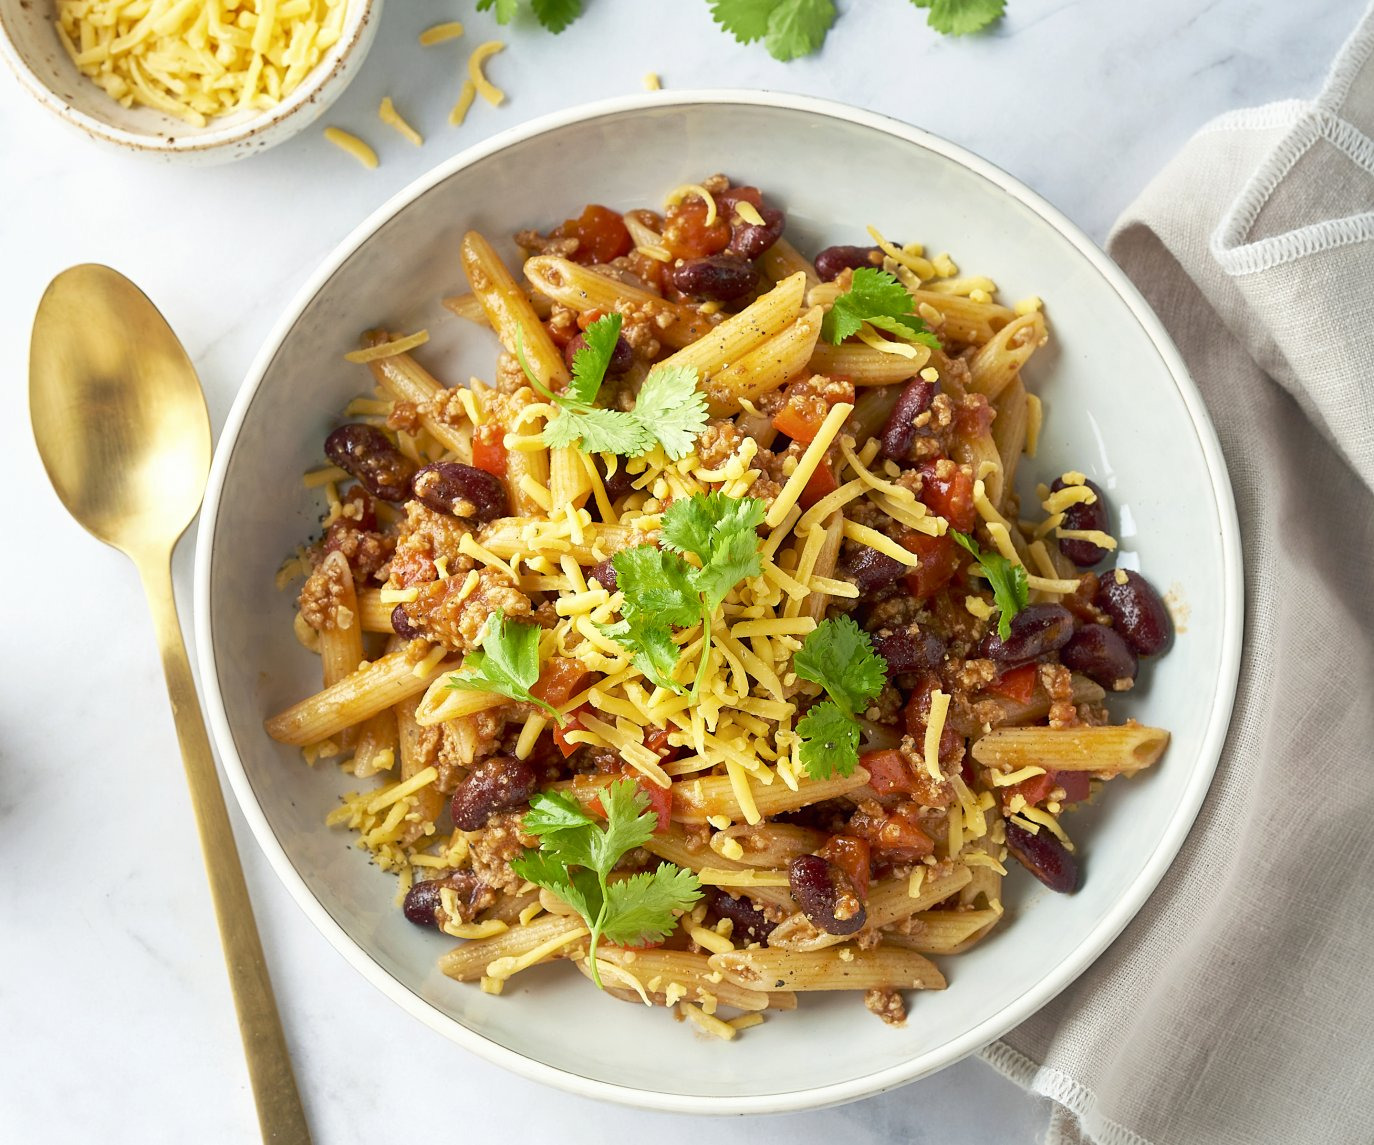 Penne chili con carne met cheddar